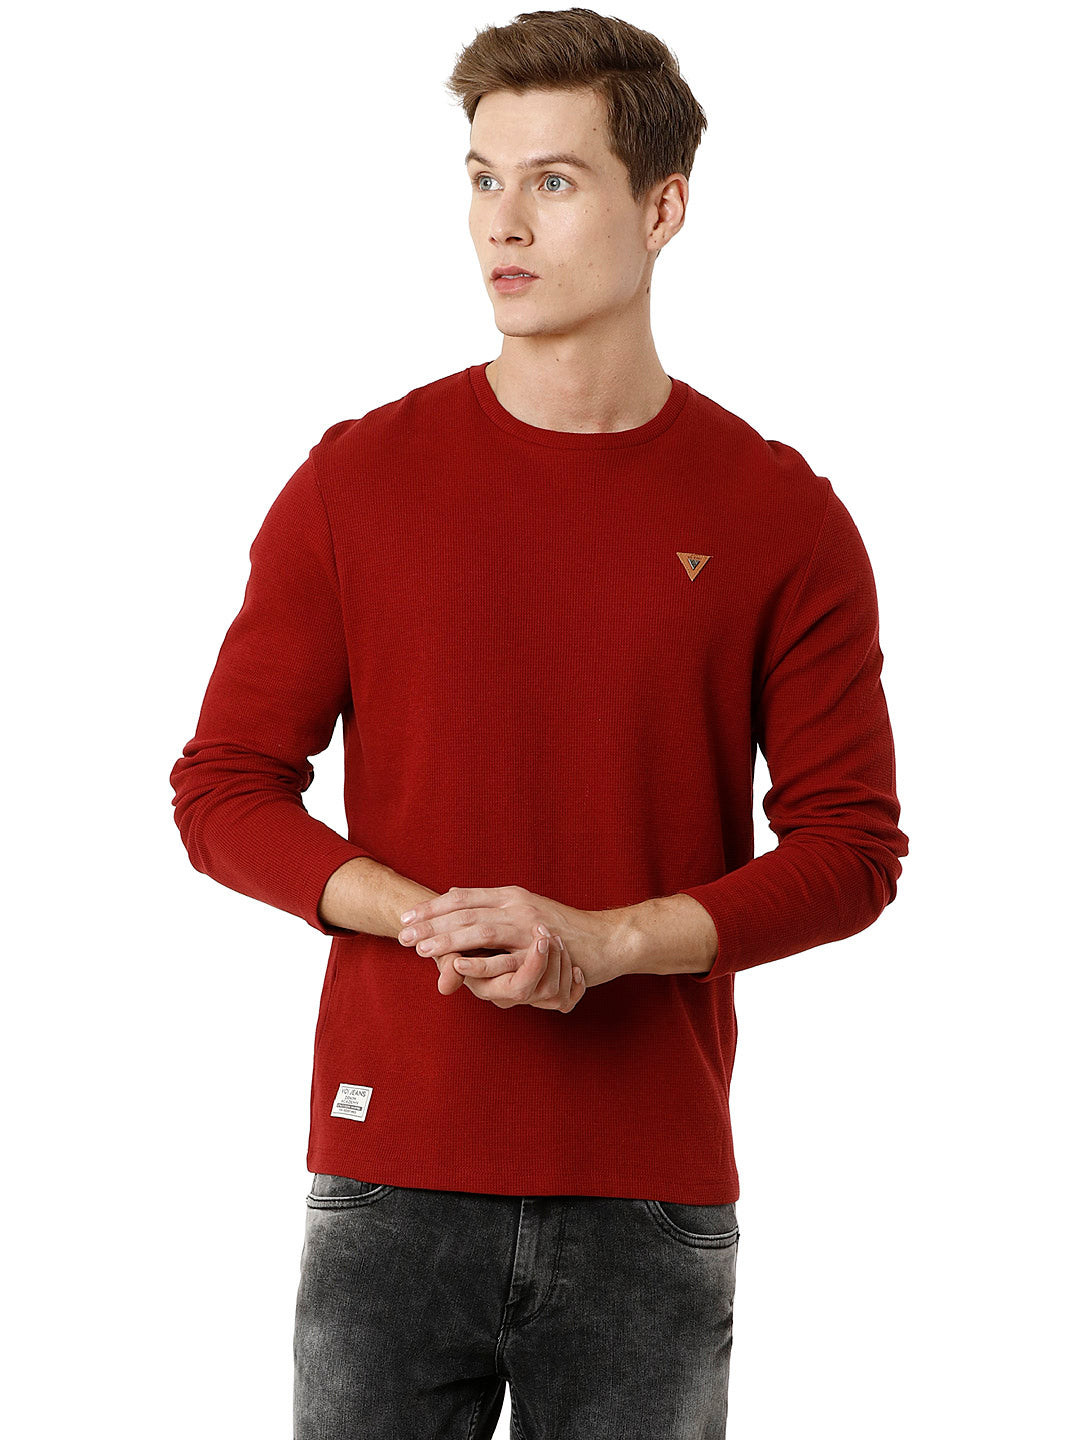 Red Full-Sleeve Waffle Texture Voi T-shirt